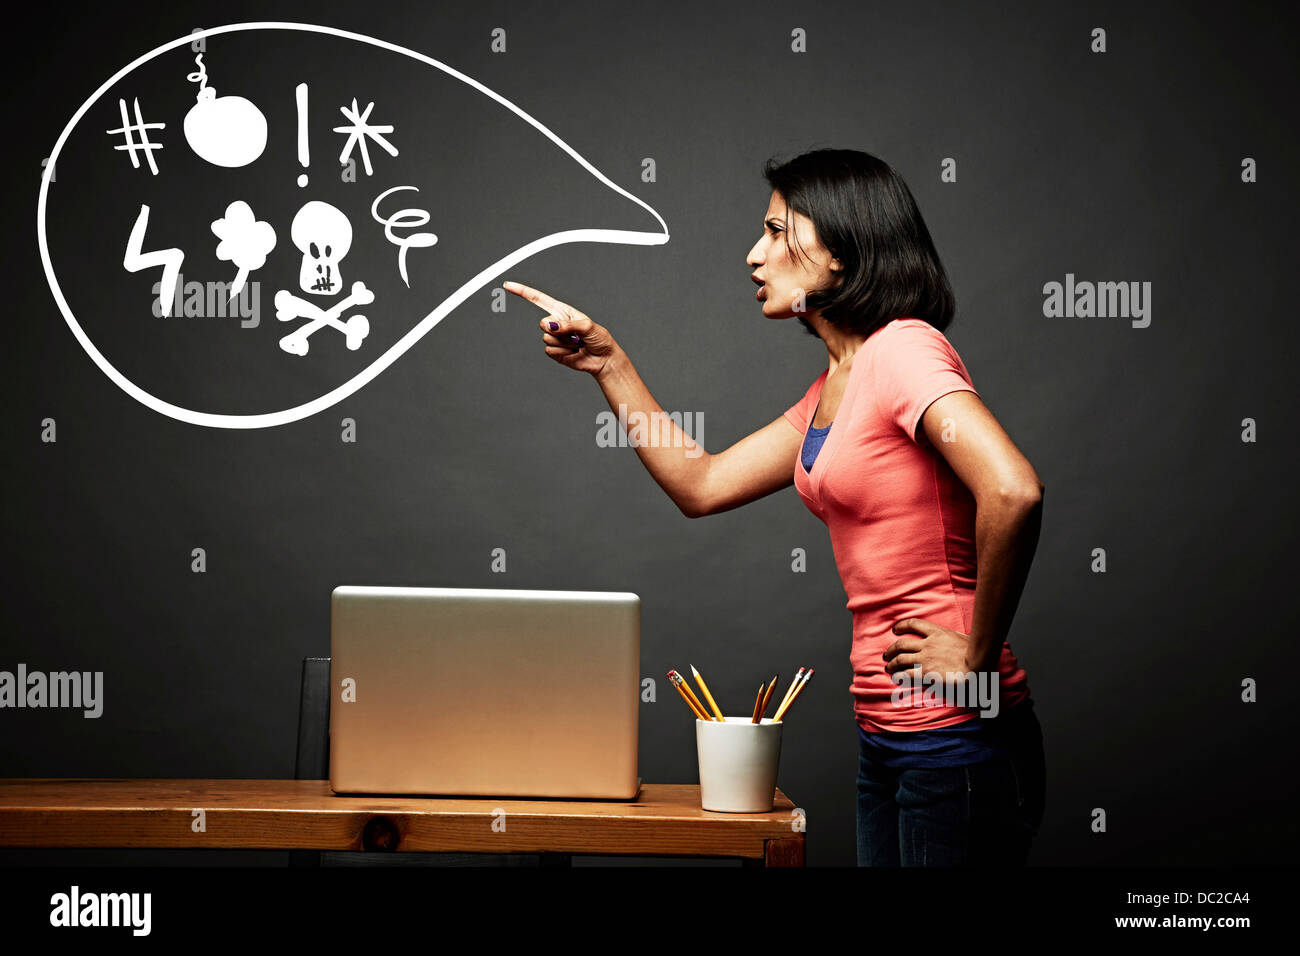 Woman pointing and shouting offensively - Stock Image